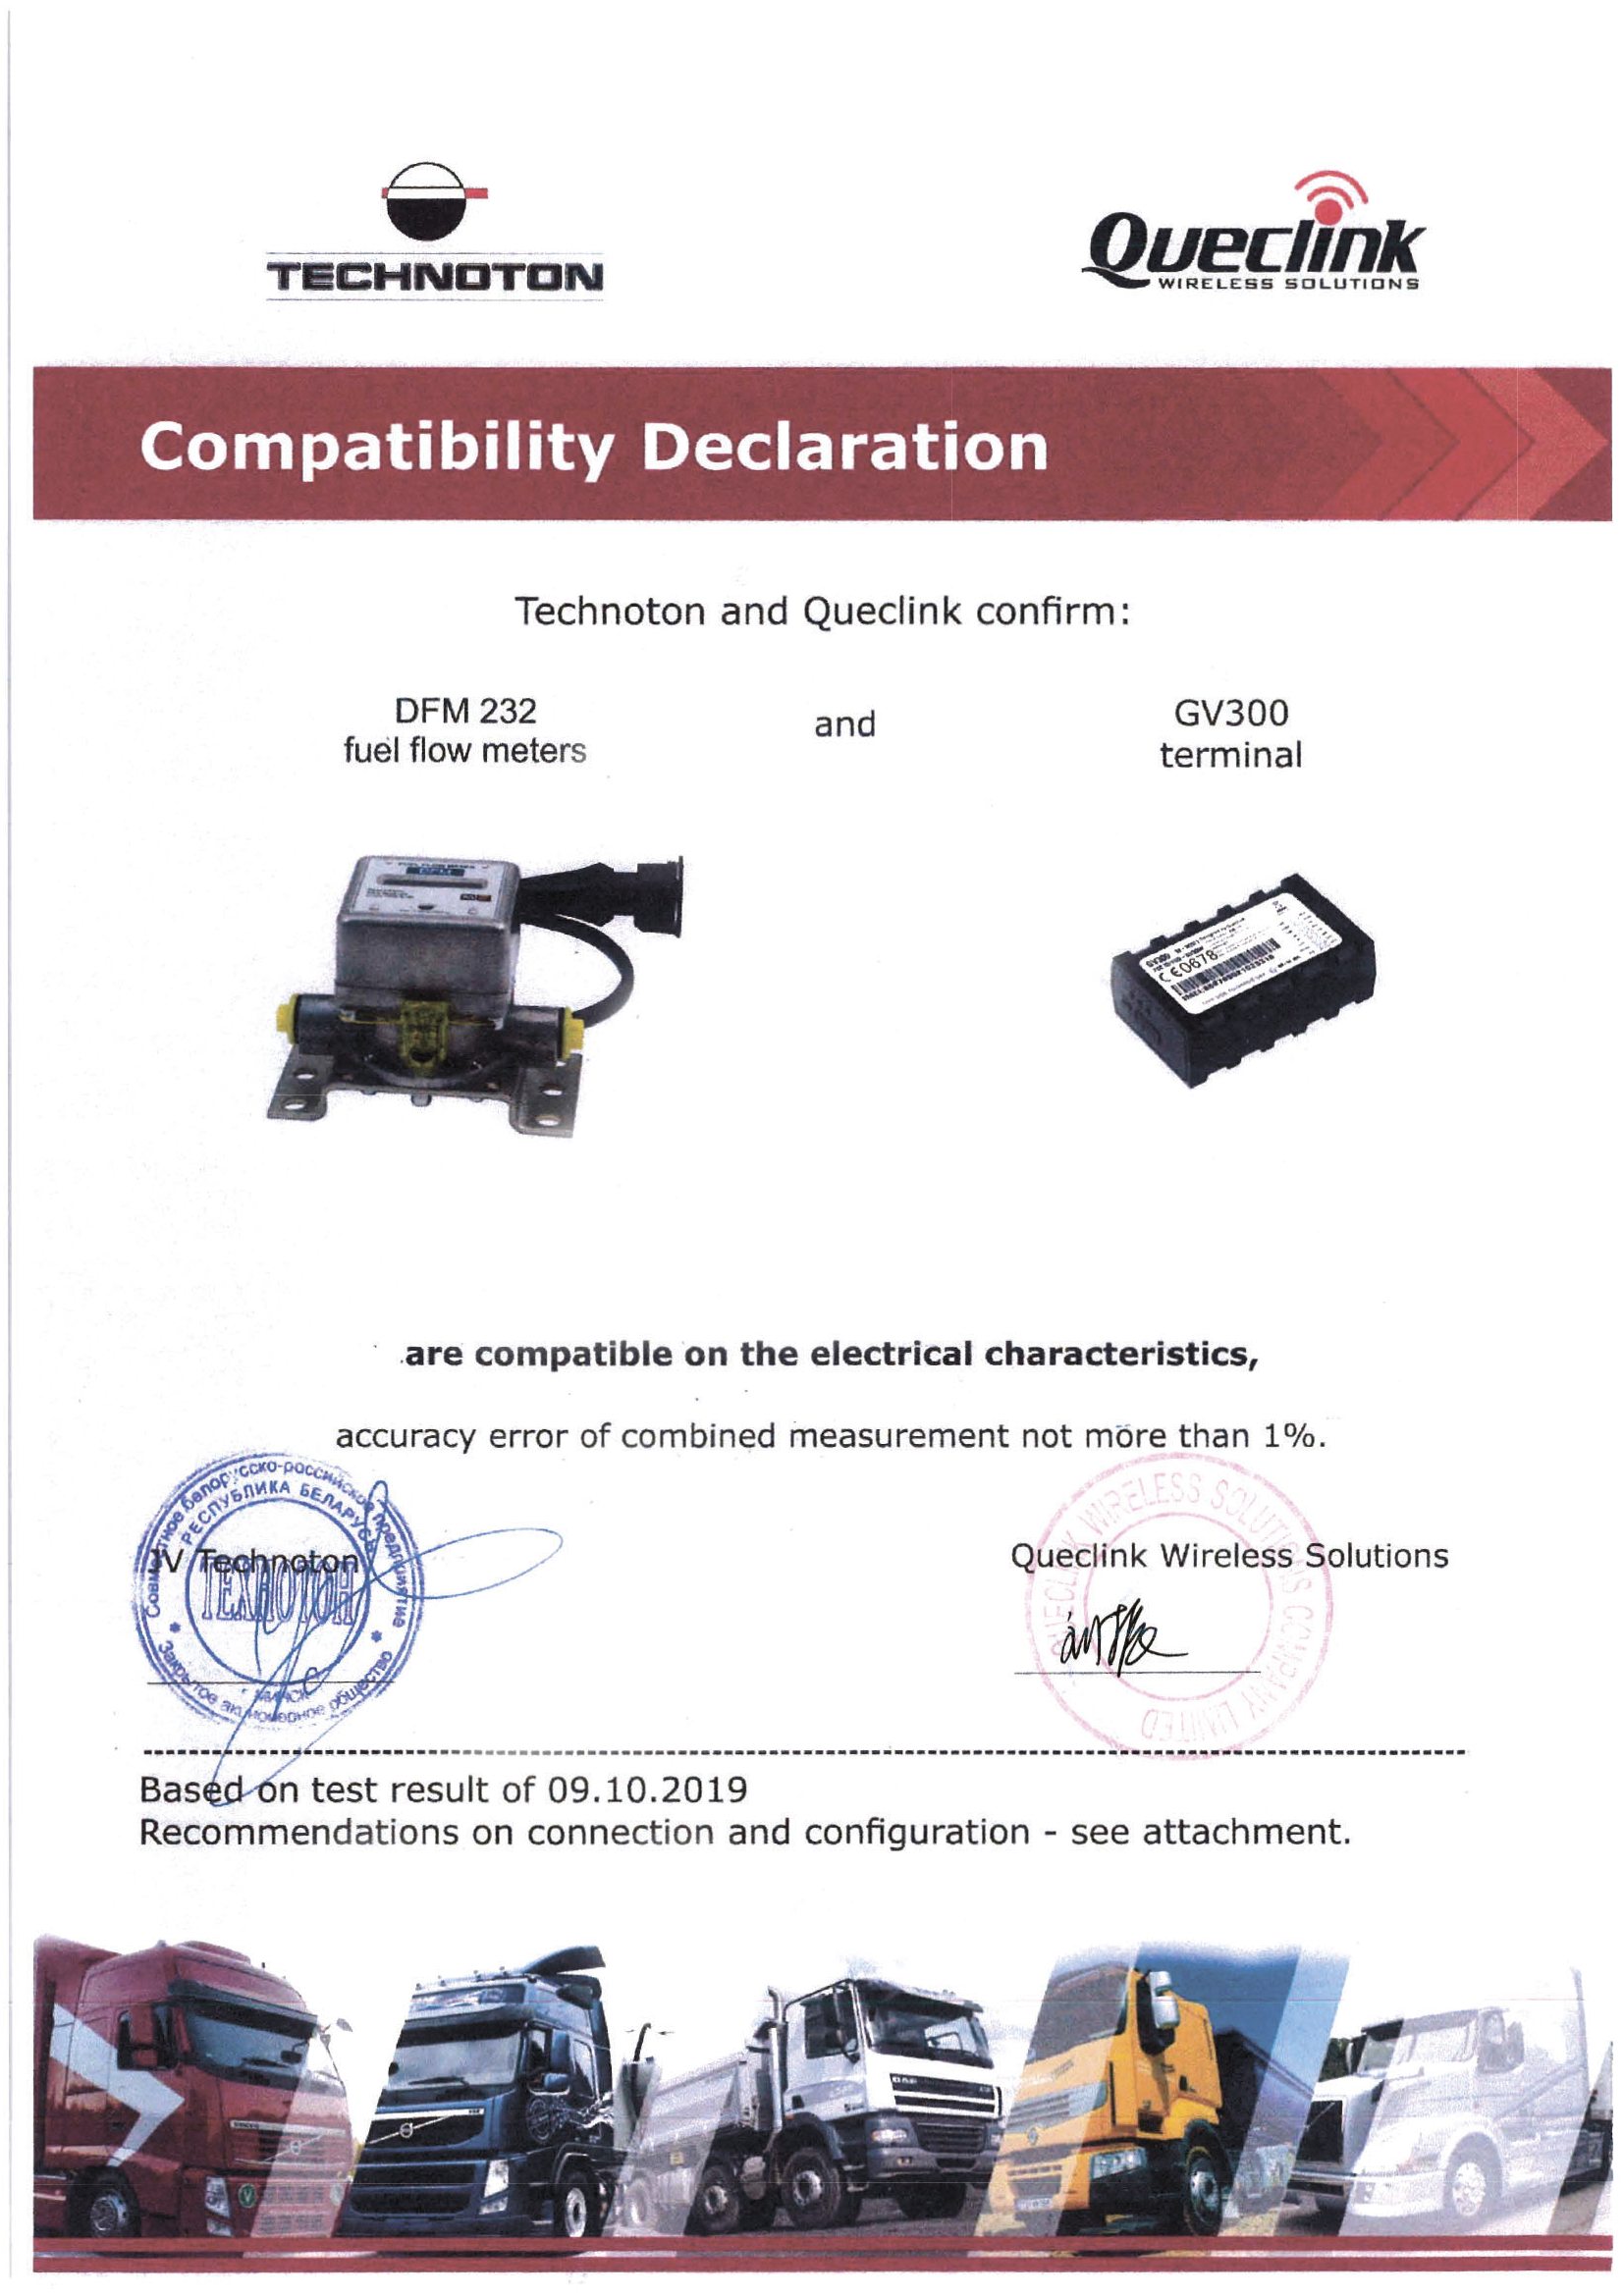 Compatibility Declaration of Technoton DFM 232 and Queclink GV300 tracker